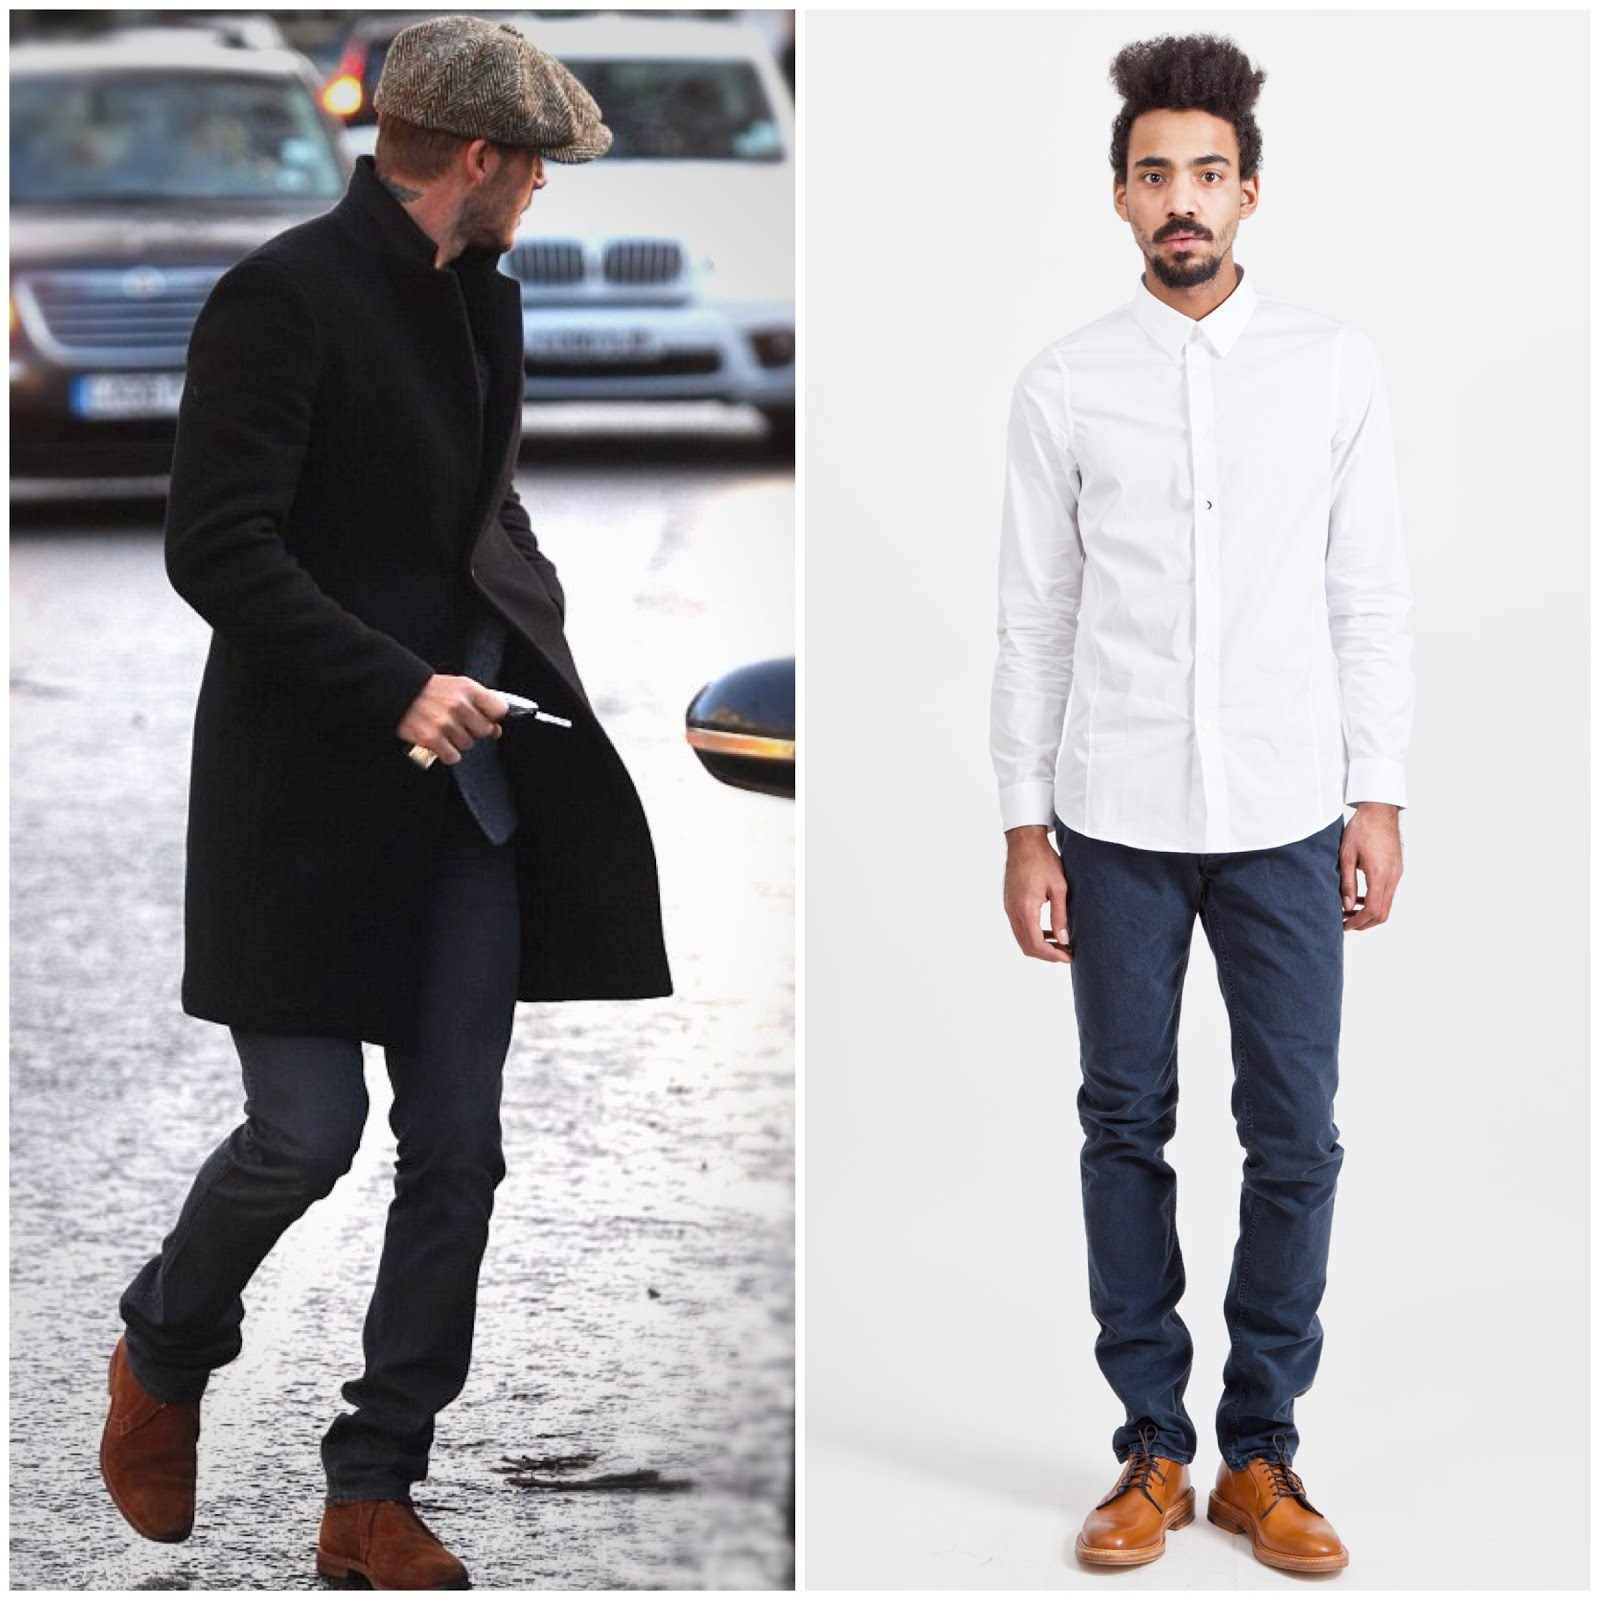 00O00 Menswear Blog David Beckham's ACNE 'Vega Bladerunner' jeans, London before heading to Paris for Saint Germain